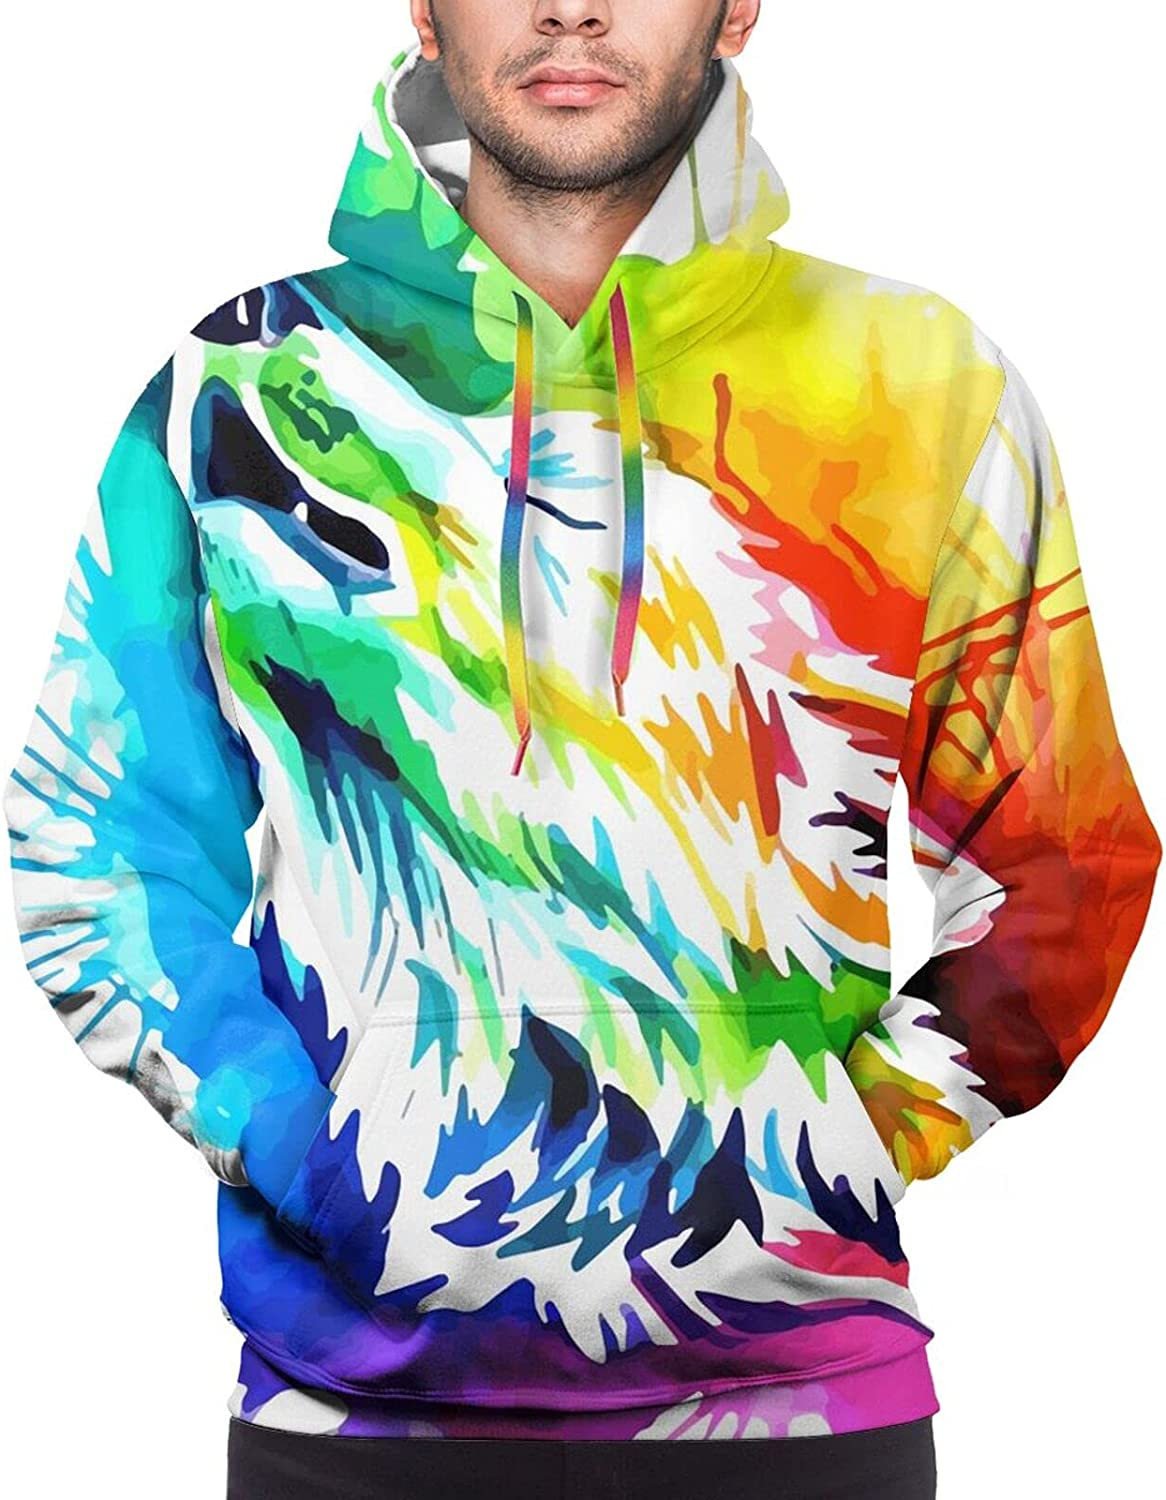 Hoodie For Teens Boys Girls Colorful Howling Wolf Hoodies Outdoor Sports Sweater